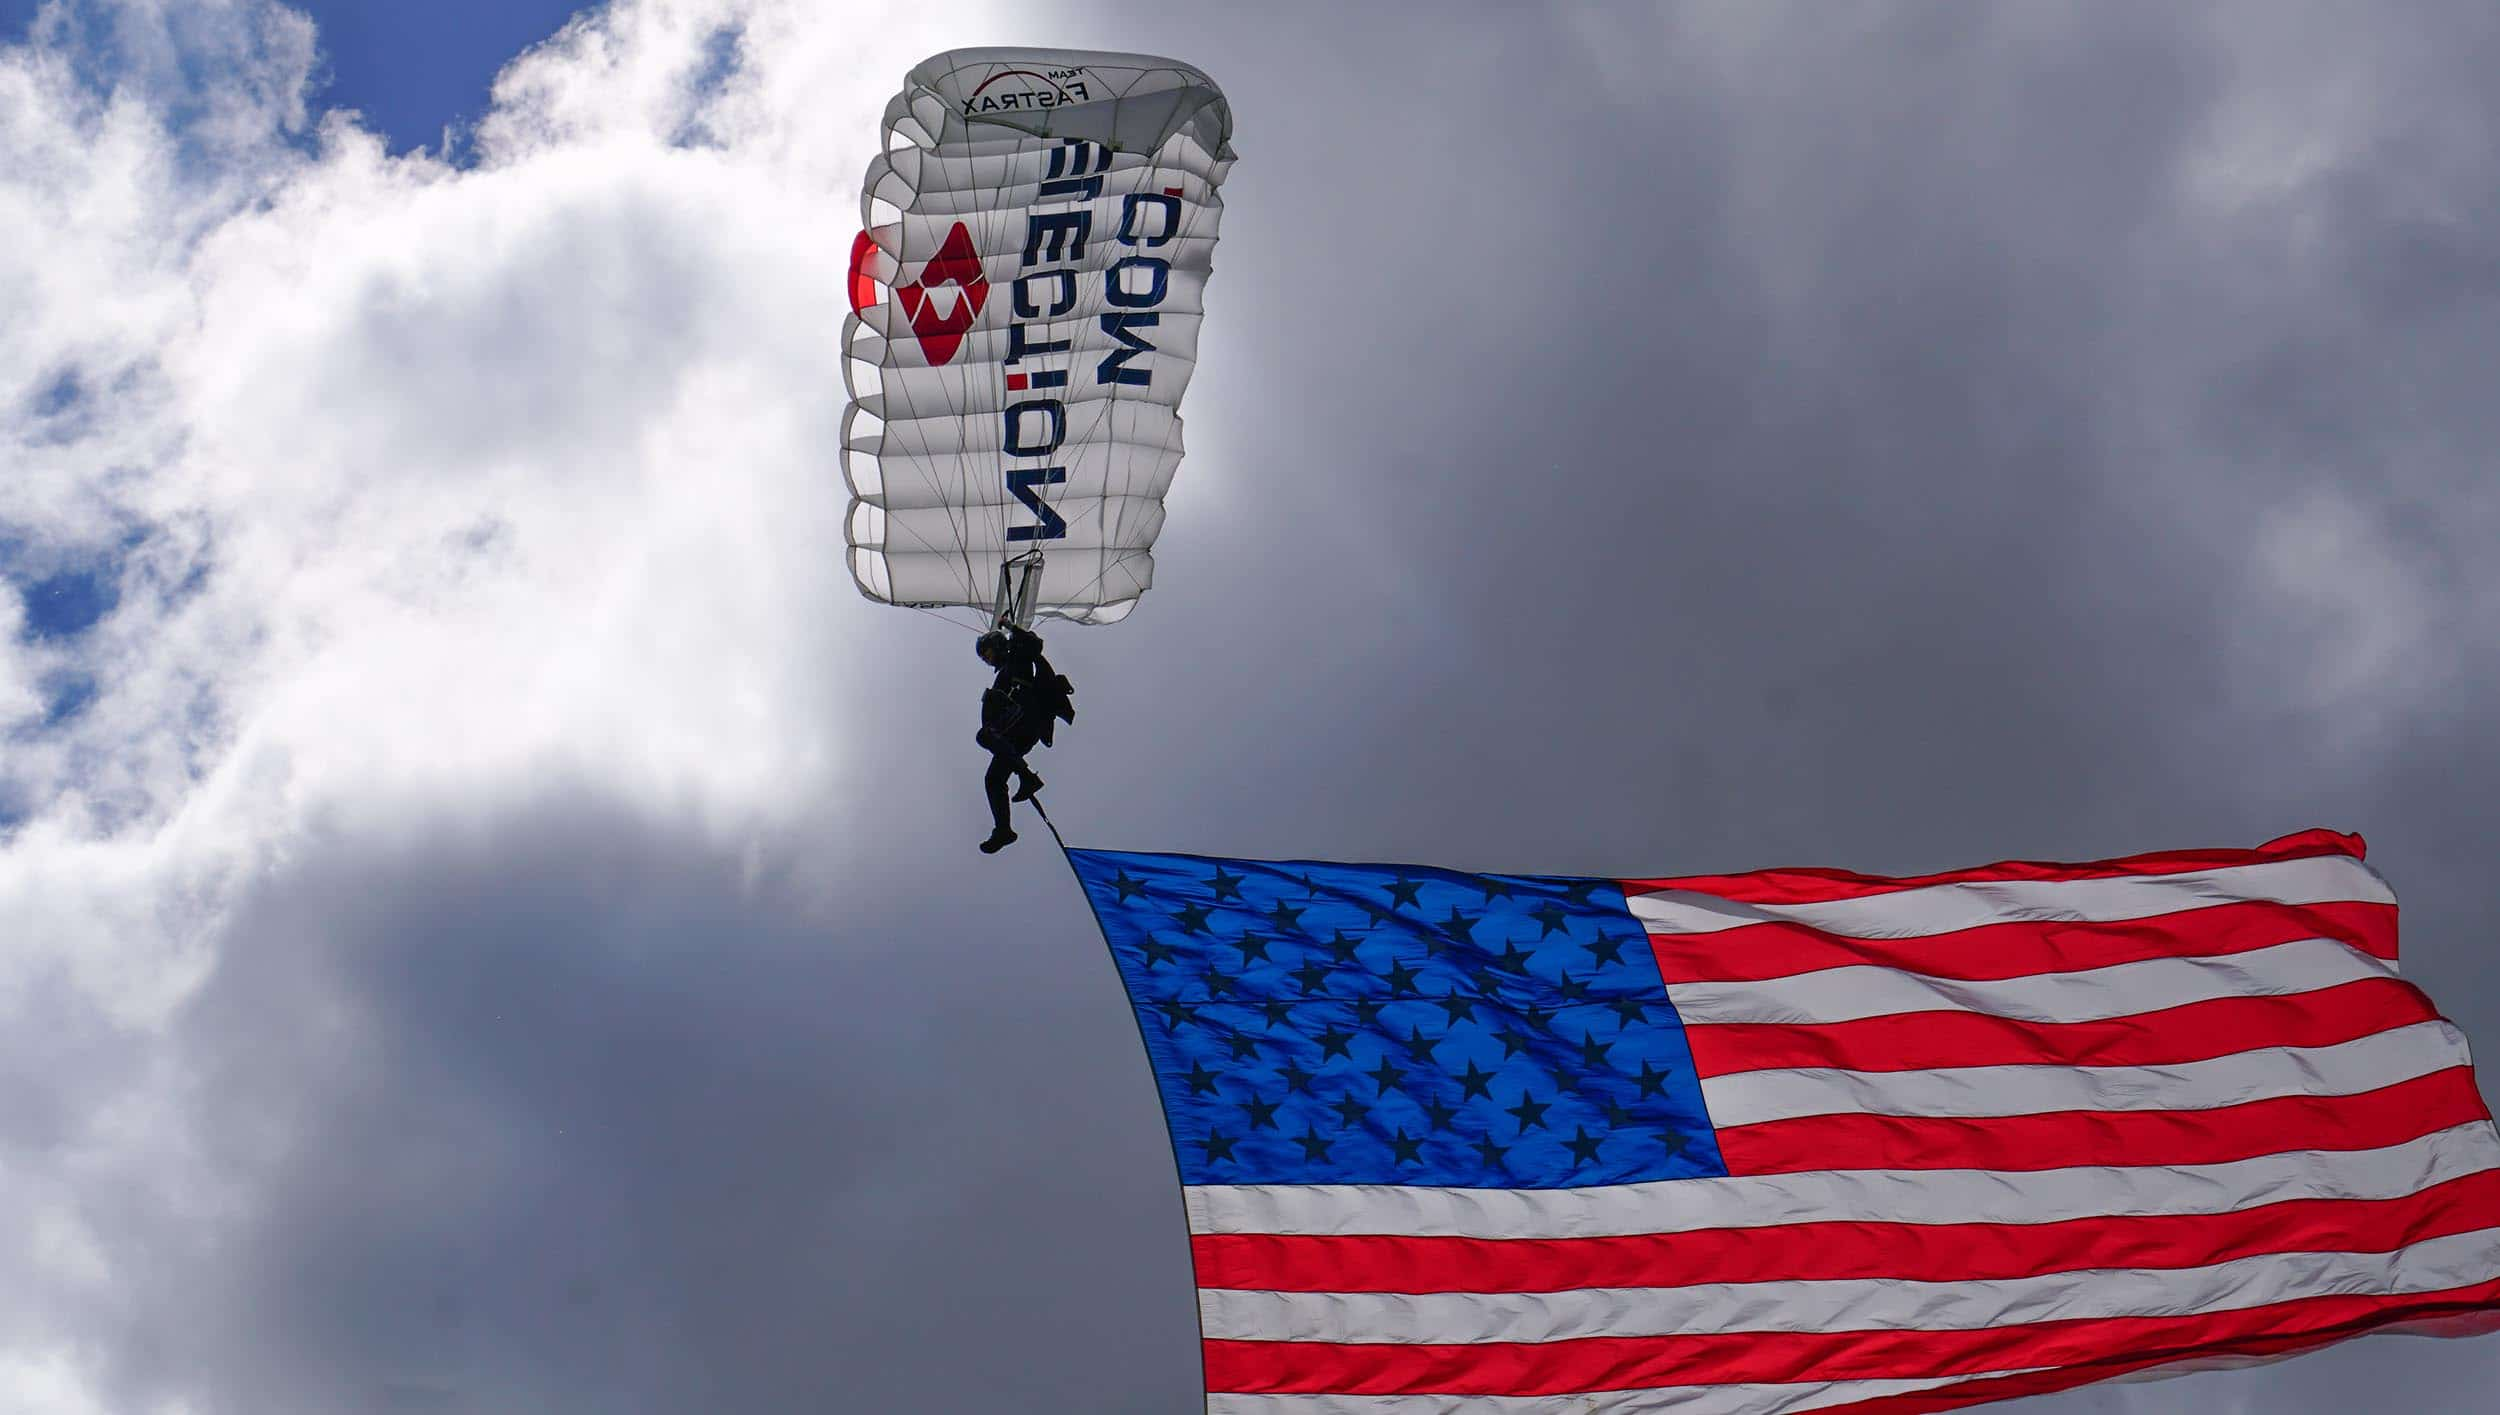 Baylor Football Game to Include Special Skydive Start